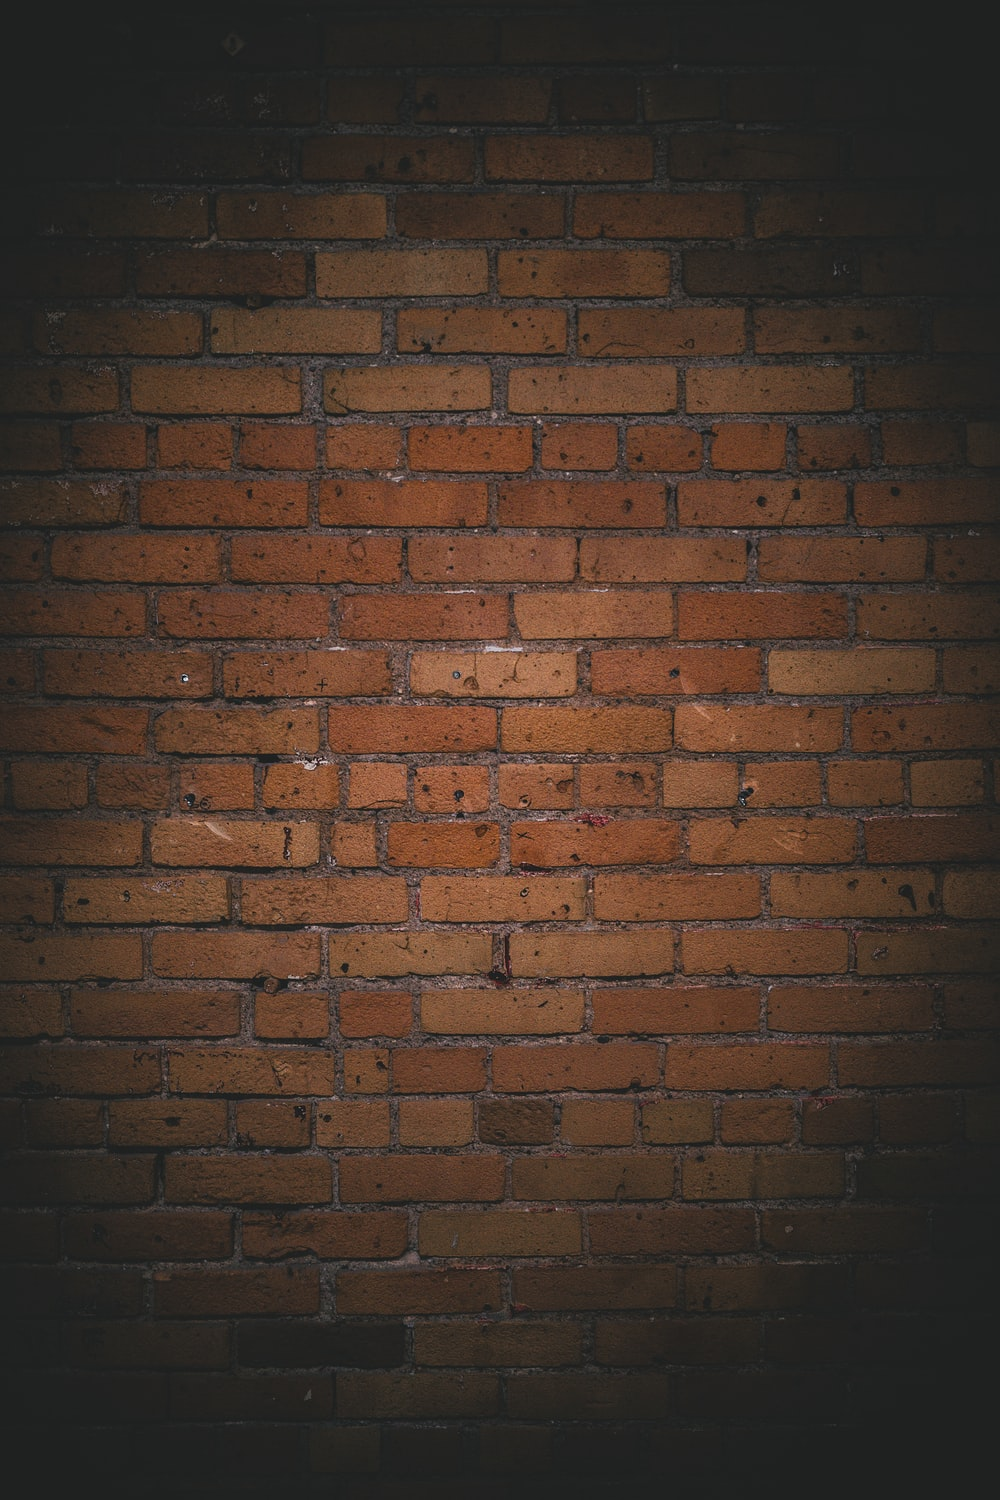 brown brick wall during night time